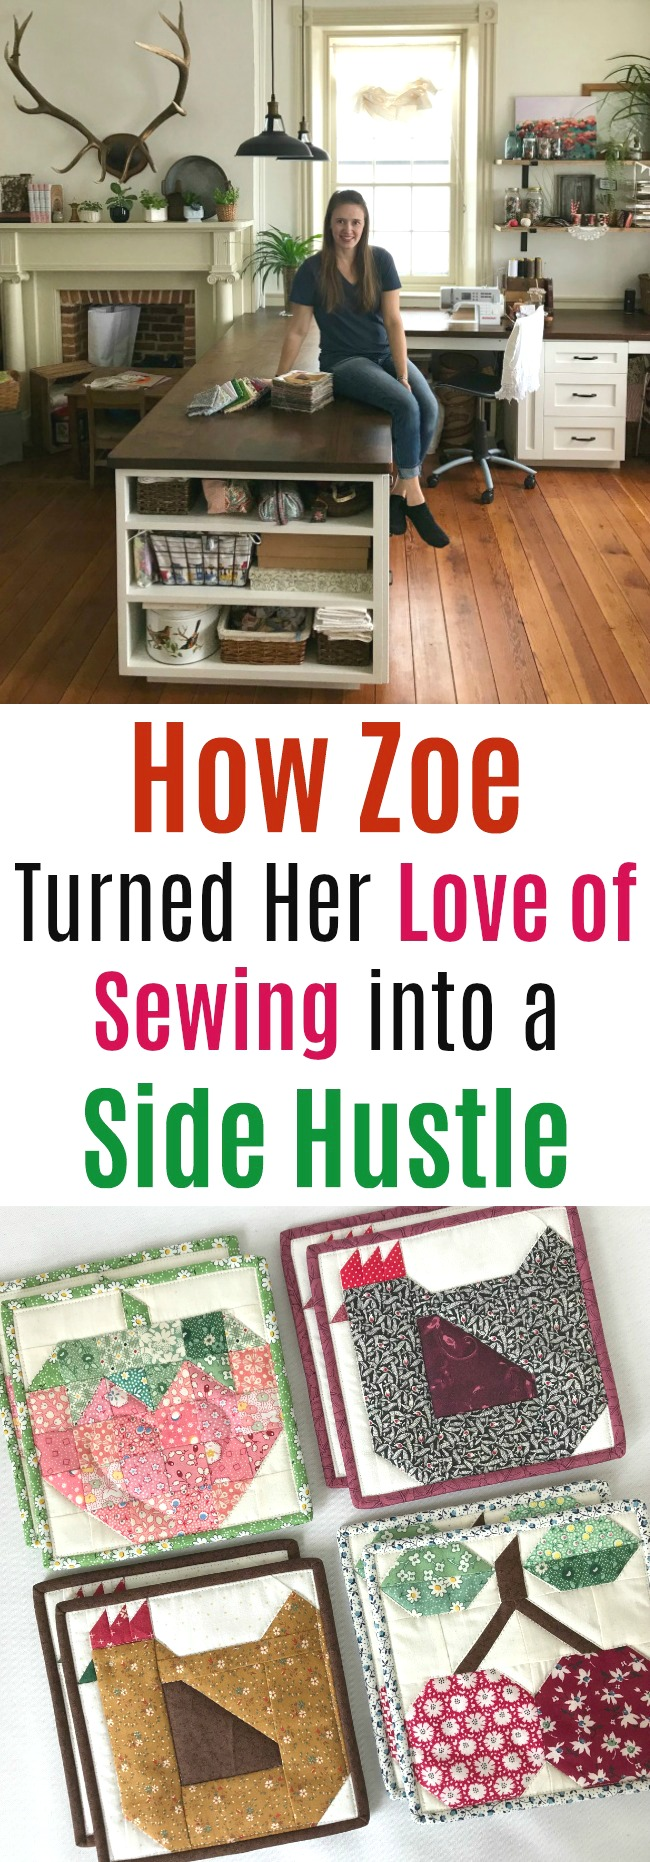 How Zoe from Lancaster, Pennsylvania Turned Her Love of Sewing into a Side Hustle